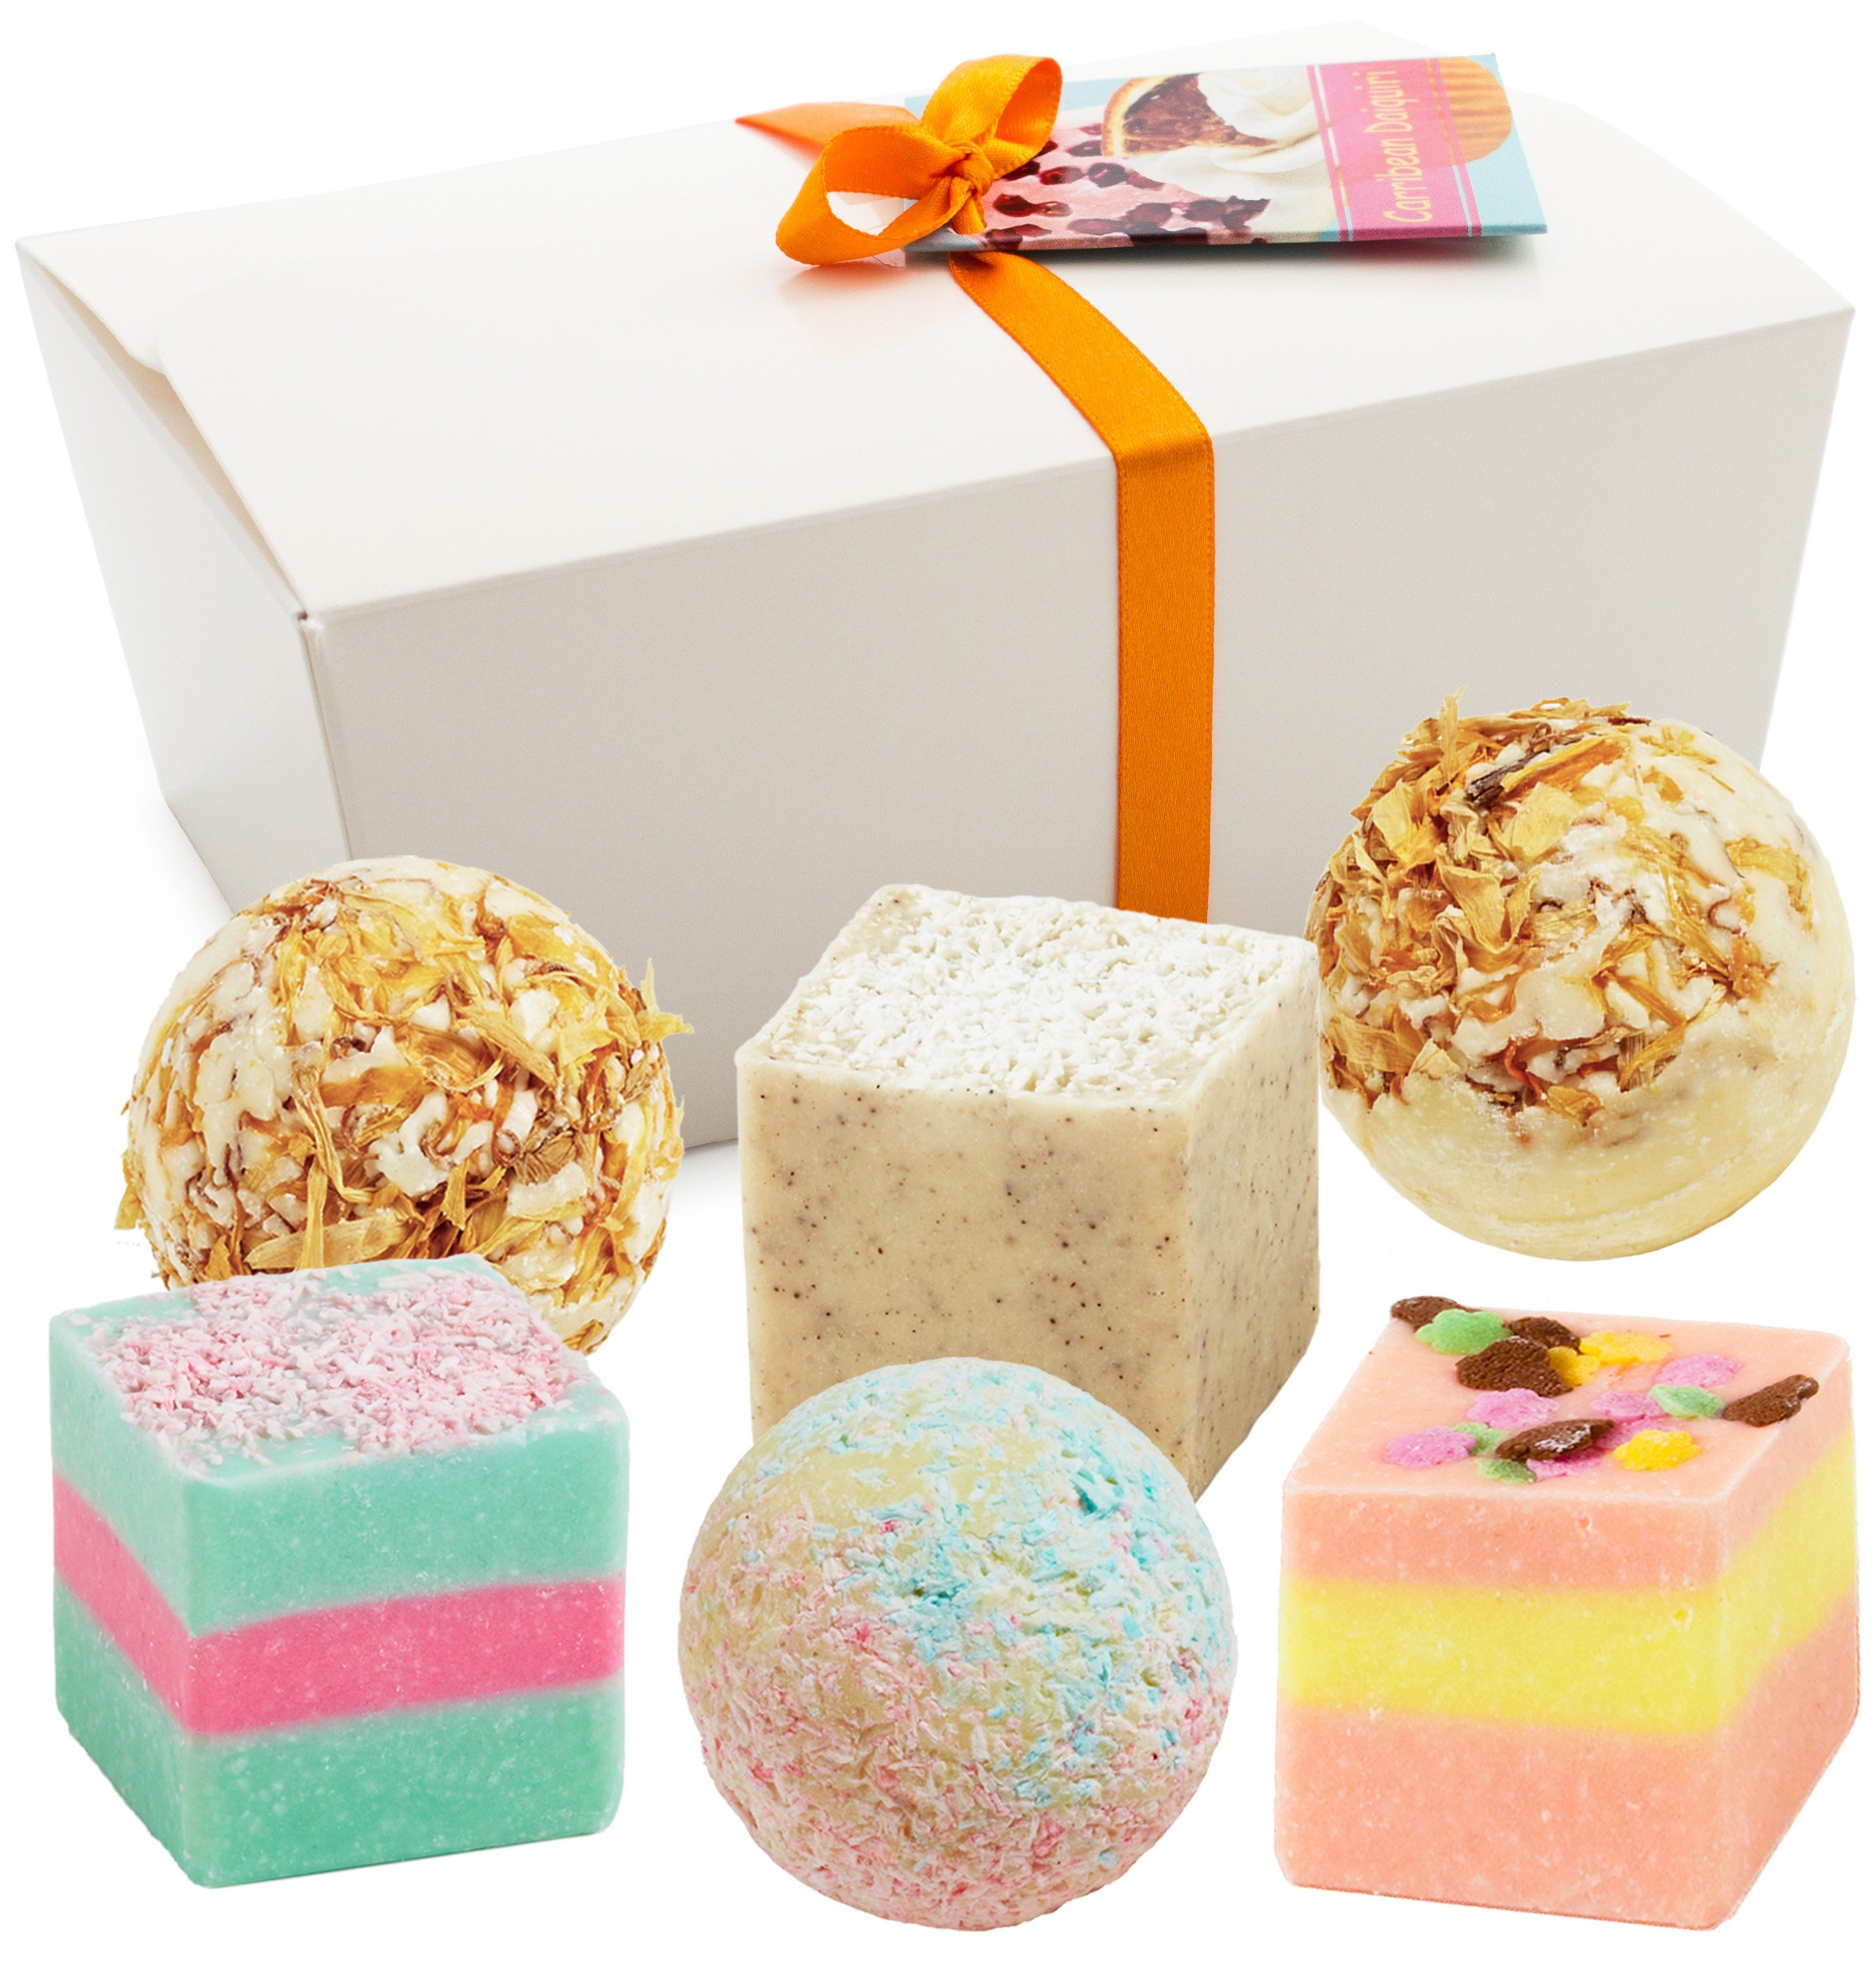 "BRUBAKER Cosmetics 6 Handmade ""Caribbean Daiquiri"" Spa Bath Bombs Bath Melts Bath Truffles Gift Set - All Natural Vegan, Organic Shea Butter, Cocoa Butter and Olive Oil Moisturize Dry Skin"